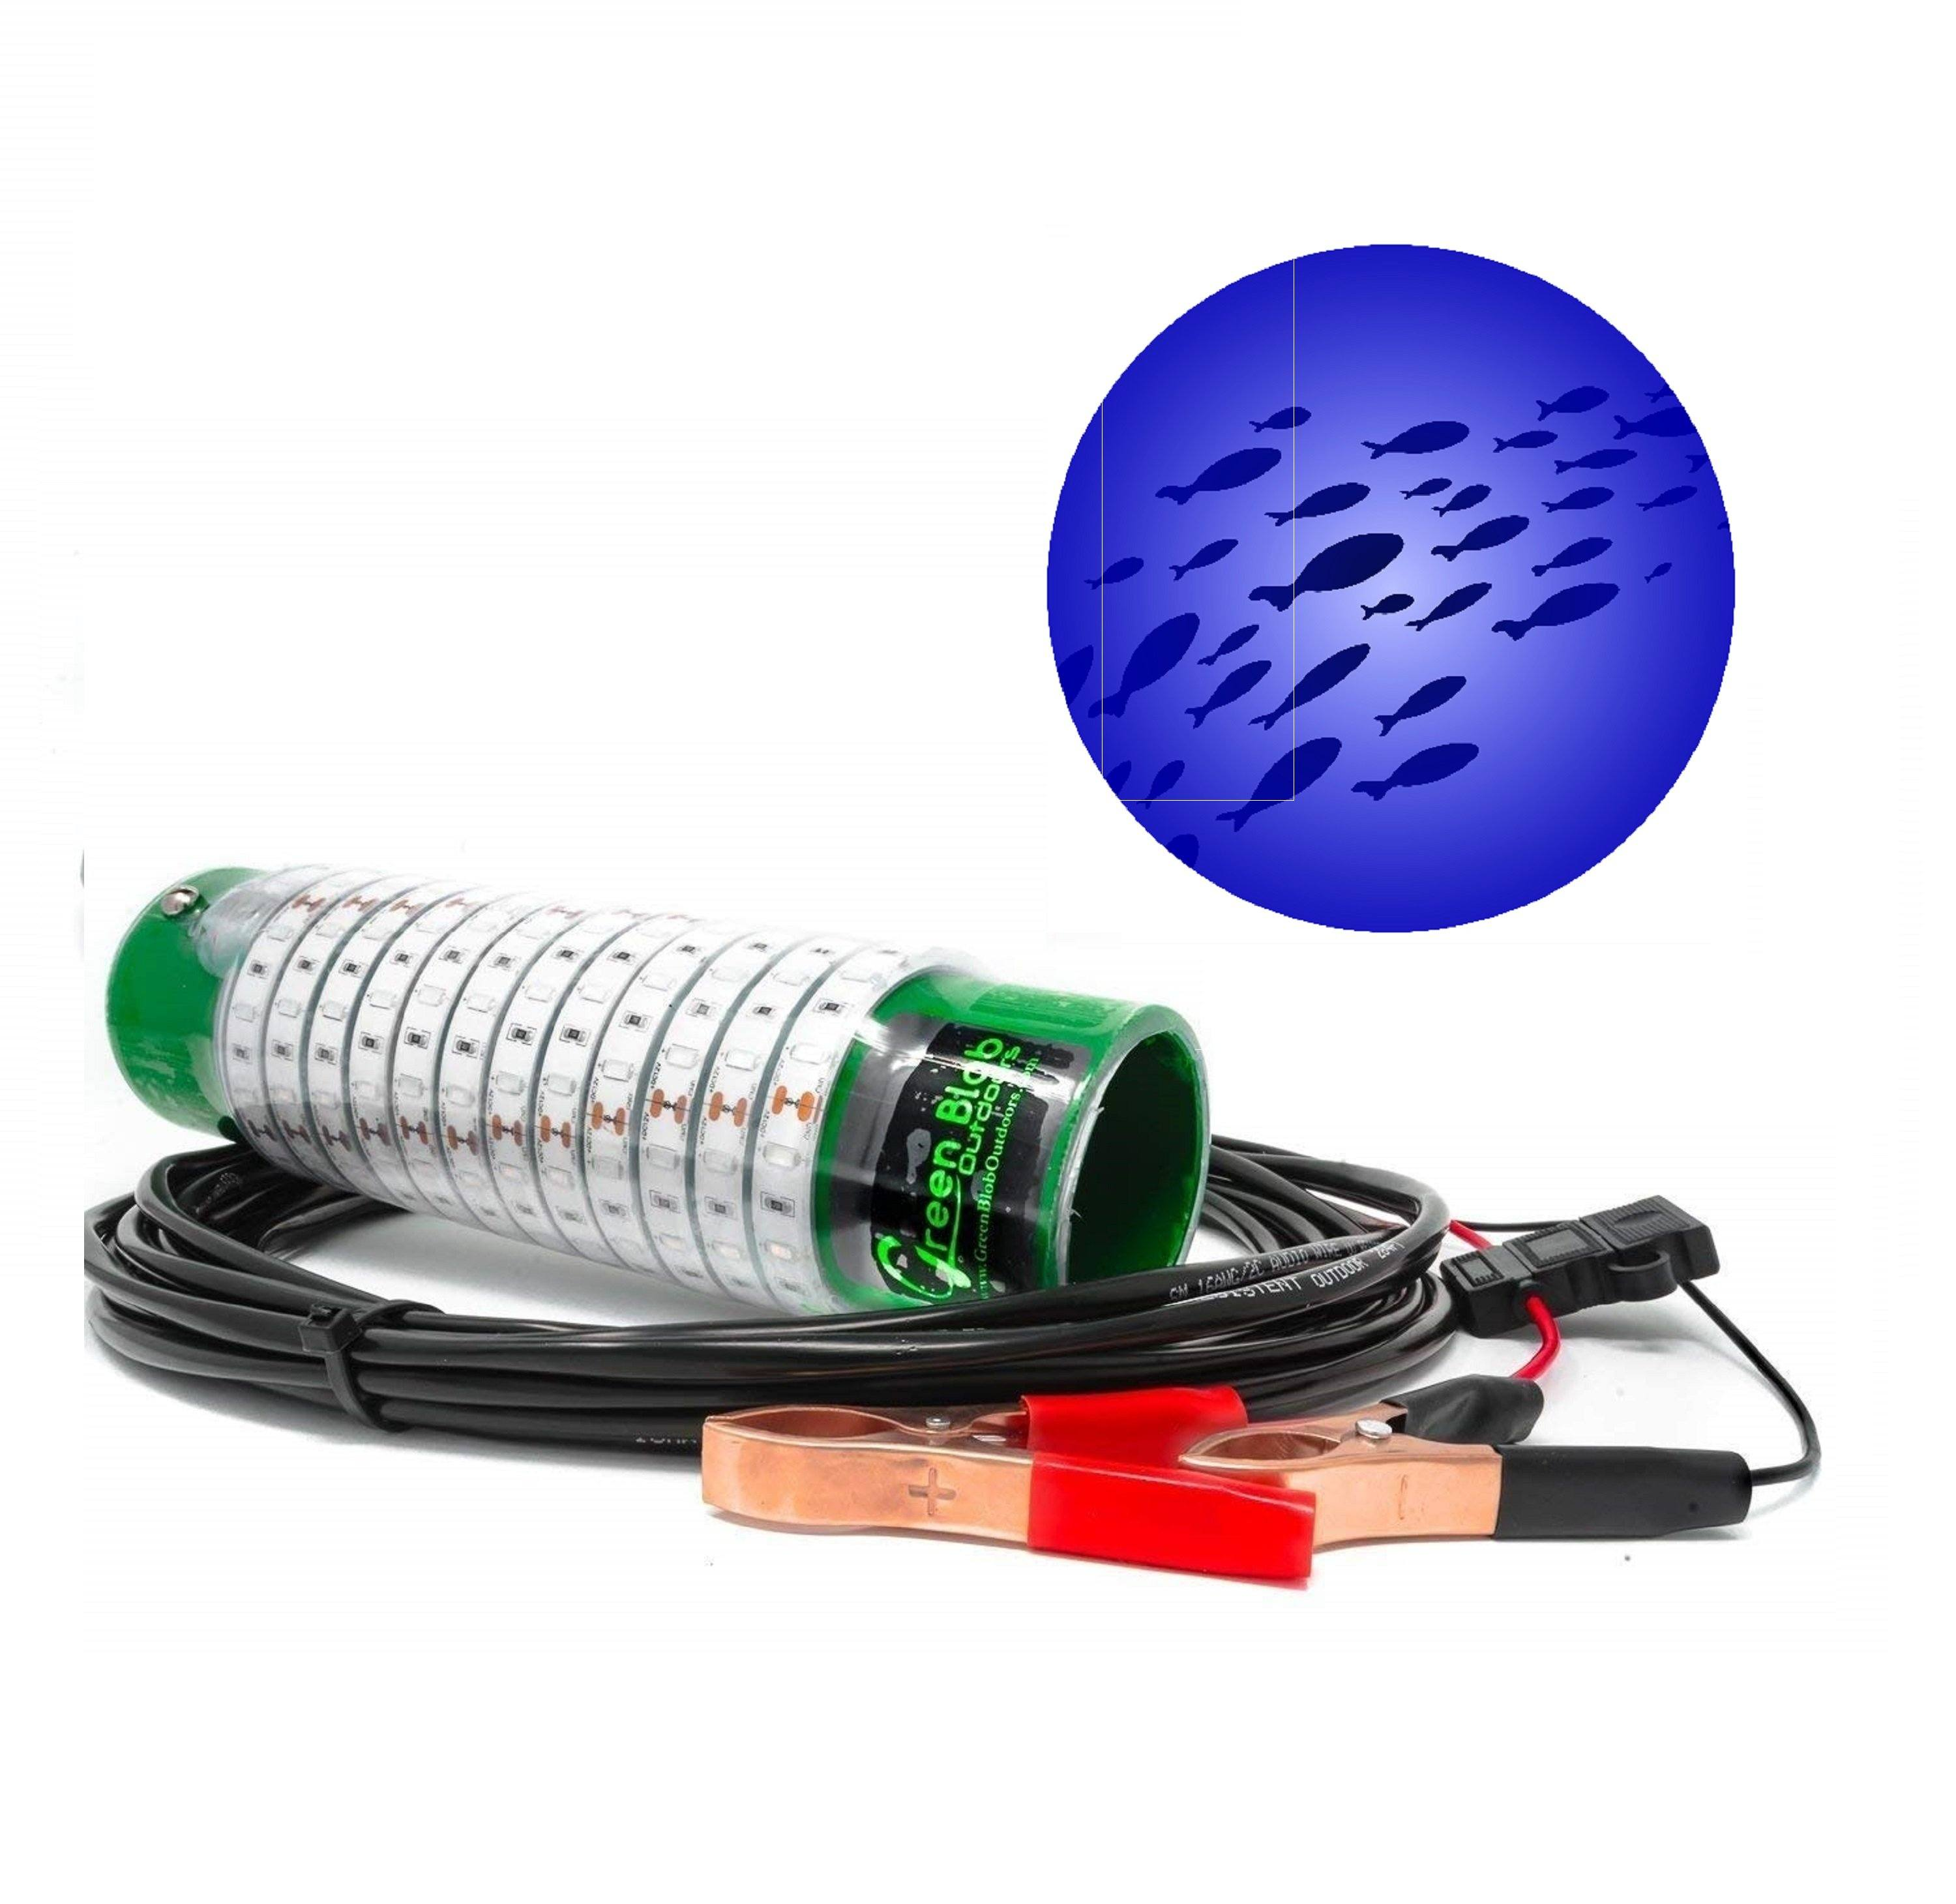 Build Your Blob Build Your Blob Green Blob Outdoors Blue 7,500 Lumens Alligator Clips 30 Feet